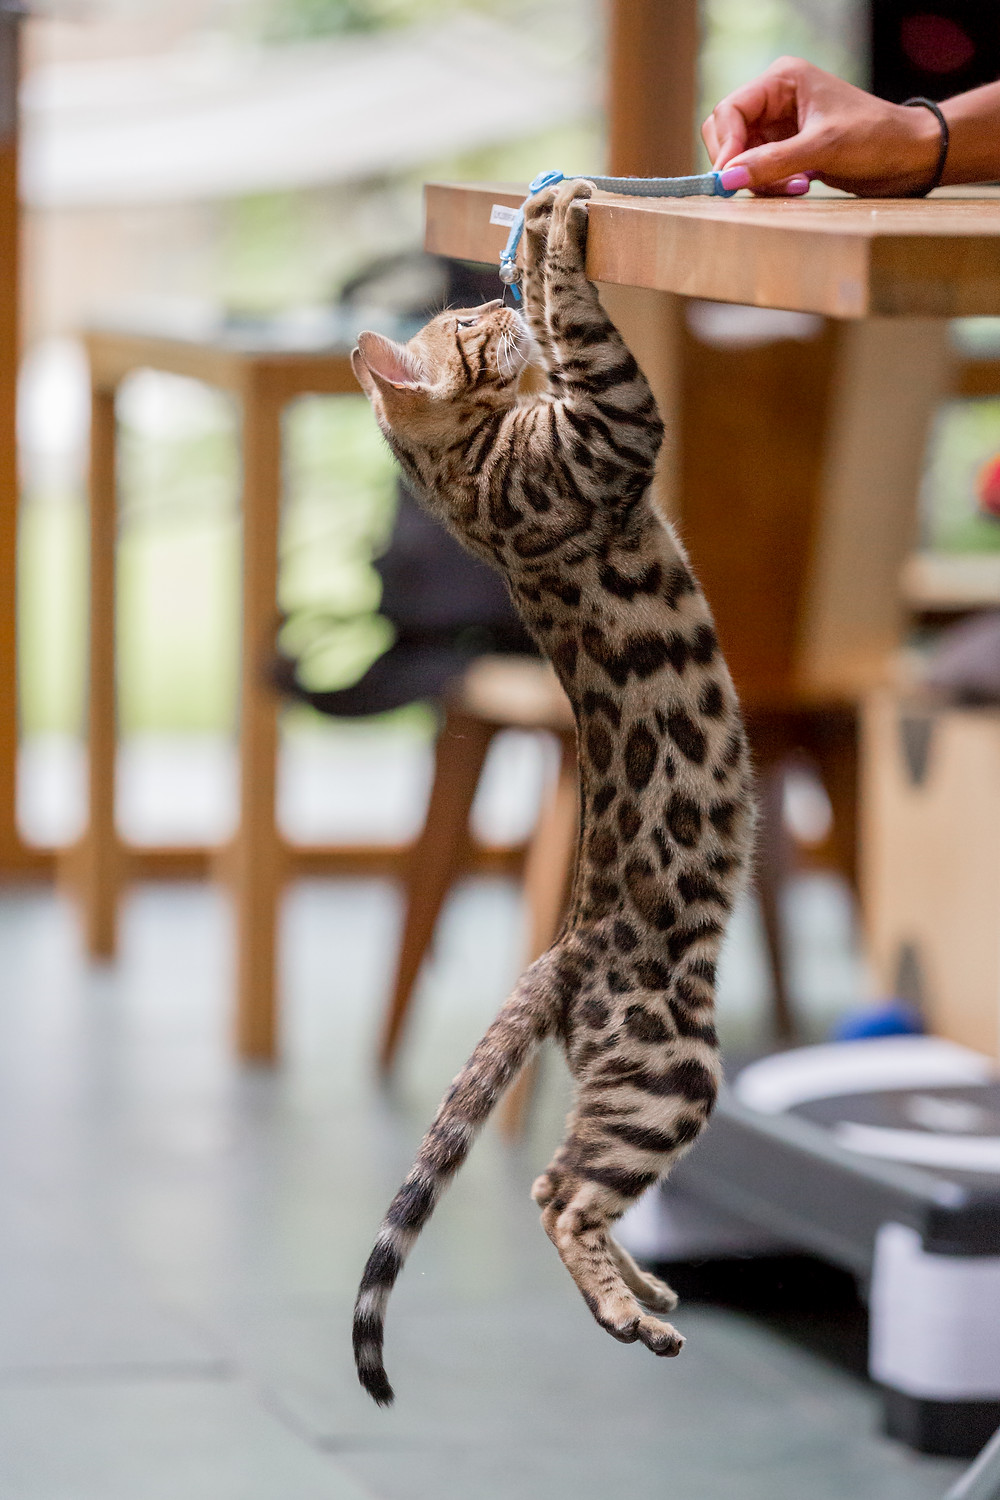 Cat photography in London. Bagheera the Bengal Kitten playing with her owner